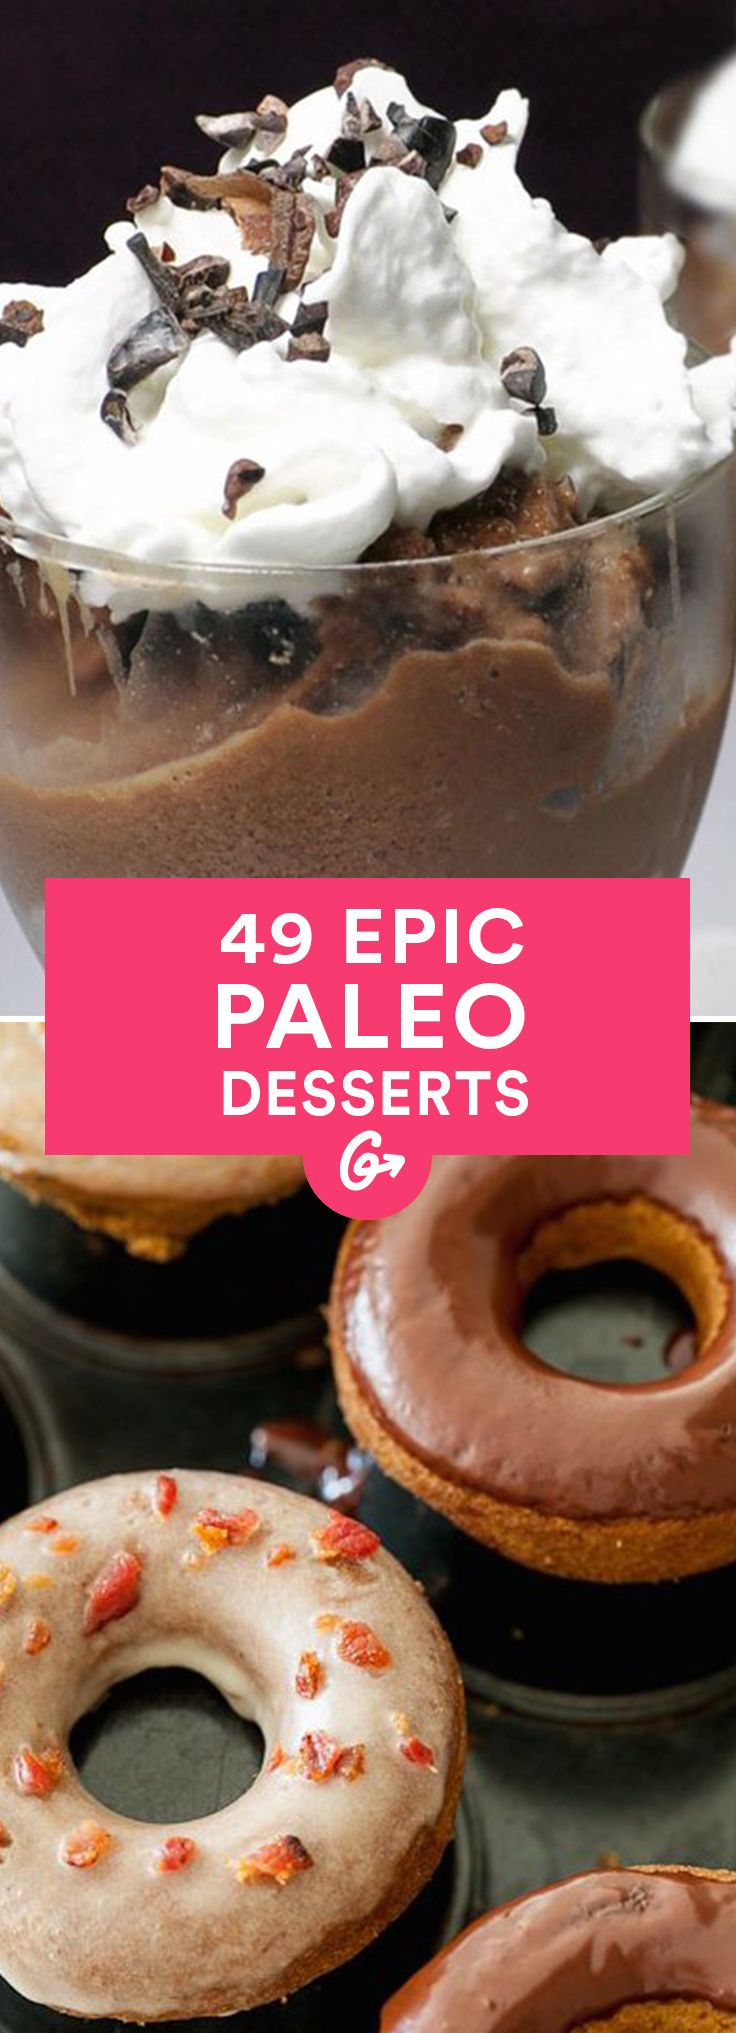 The Paleo diet can feel limiting when it comes to dessert. But this list of caveman-friendly... #paleo #desserts http://greatist.com/eat/paleo-dessert-recipes